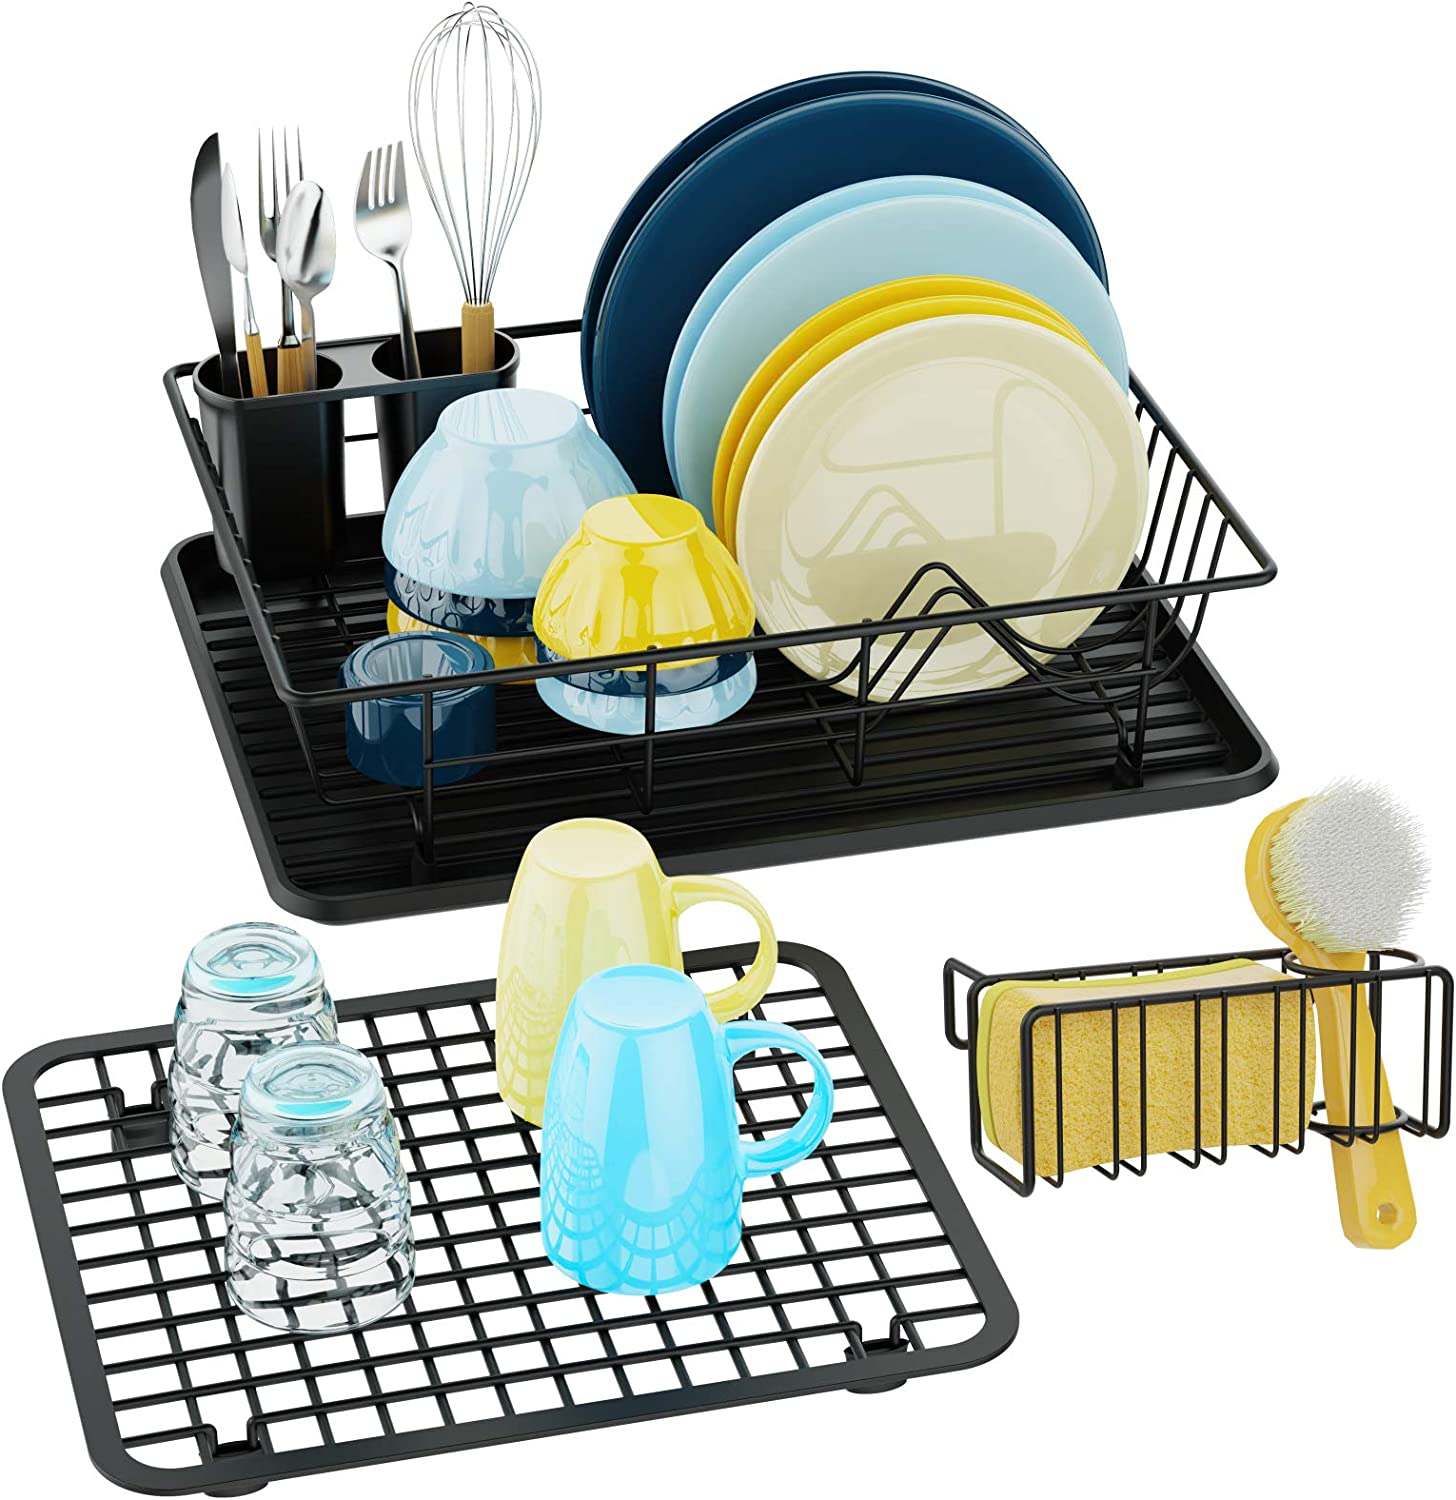 Dish Seasonal Wrap Introduction Drying Rack and Drainboard - Set Don't miss the campaign of 3 iSPECLE